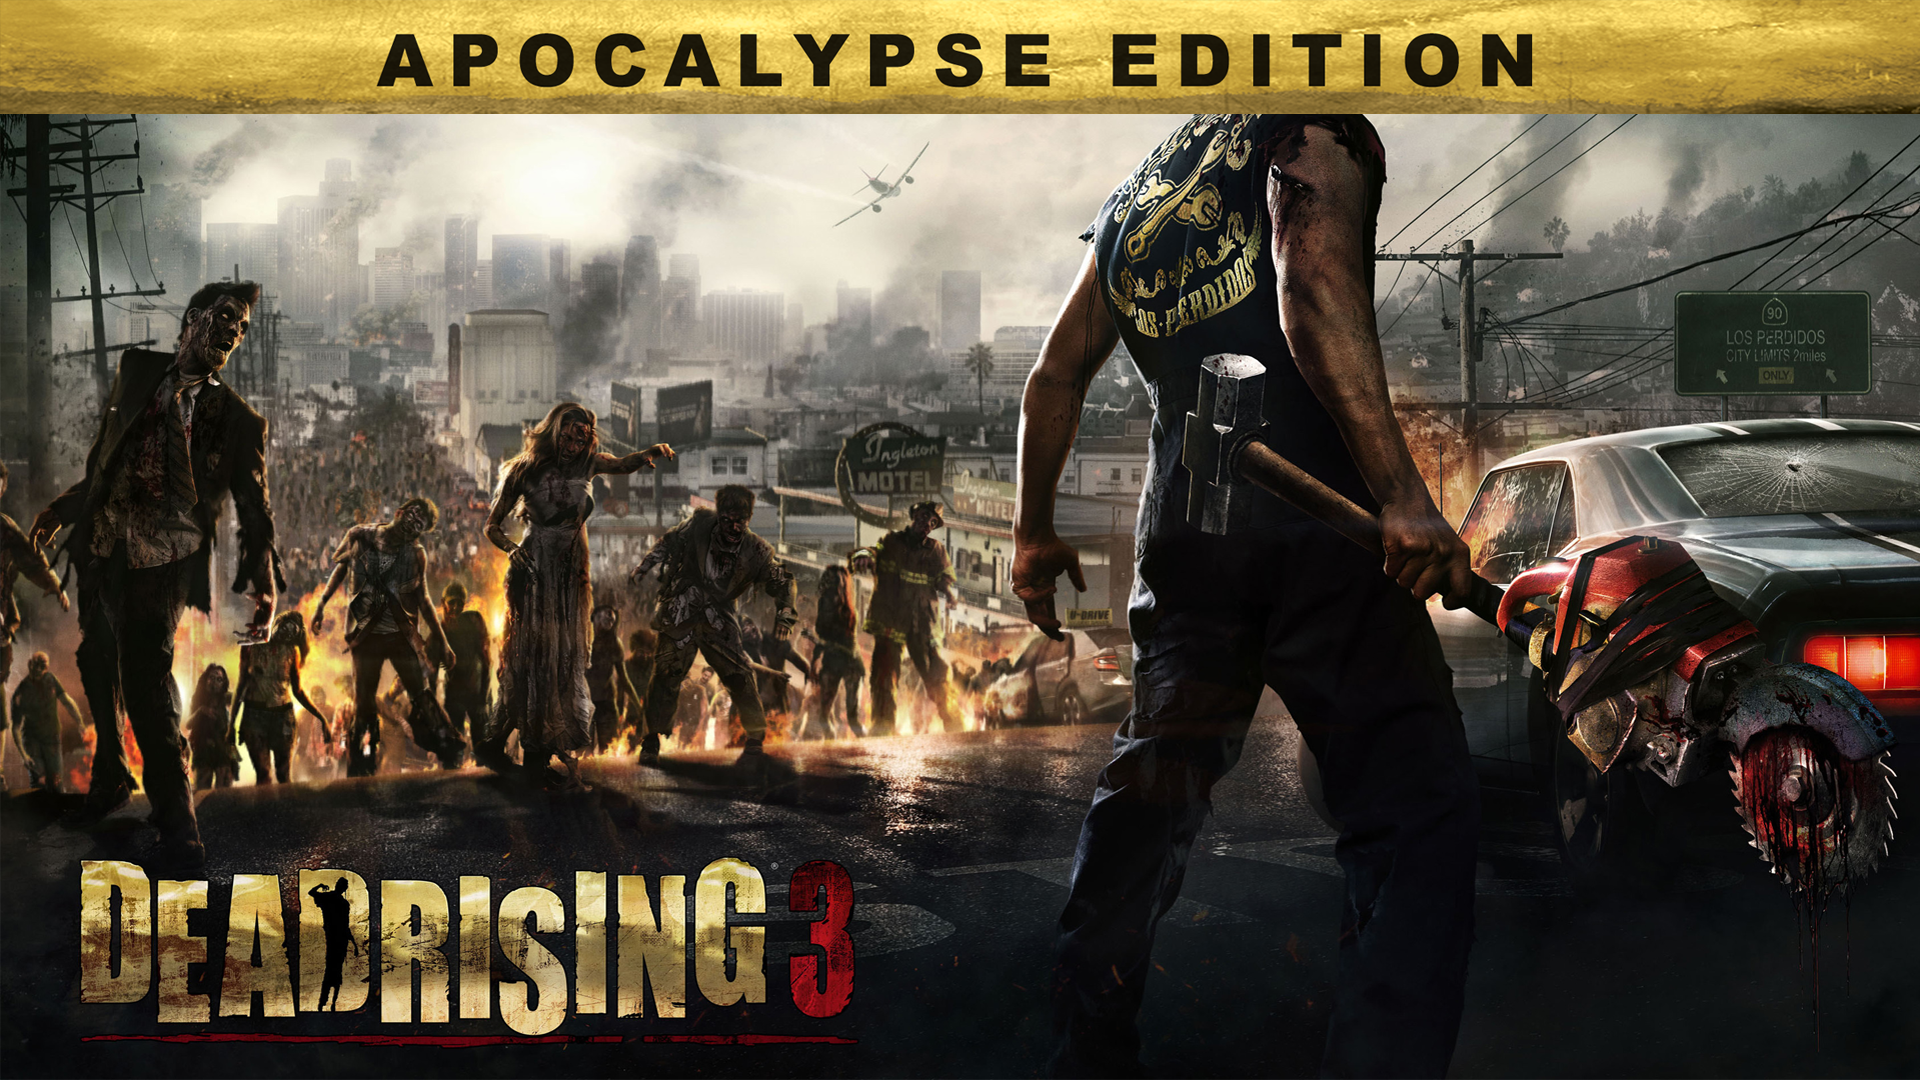 Dead rising 3 apocalypse edition video review escape the city dead rising 3 apocalypse edition video review escape the city escape the game the koalition malvernweather Images